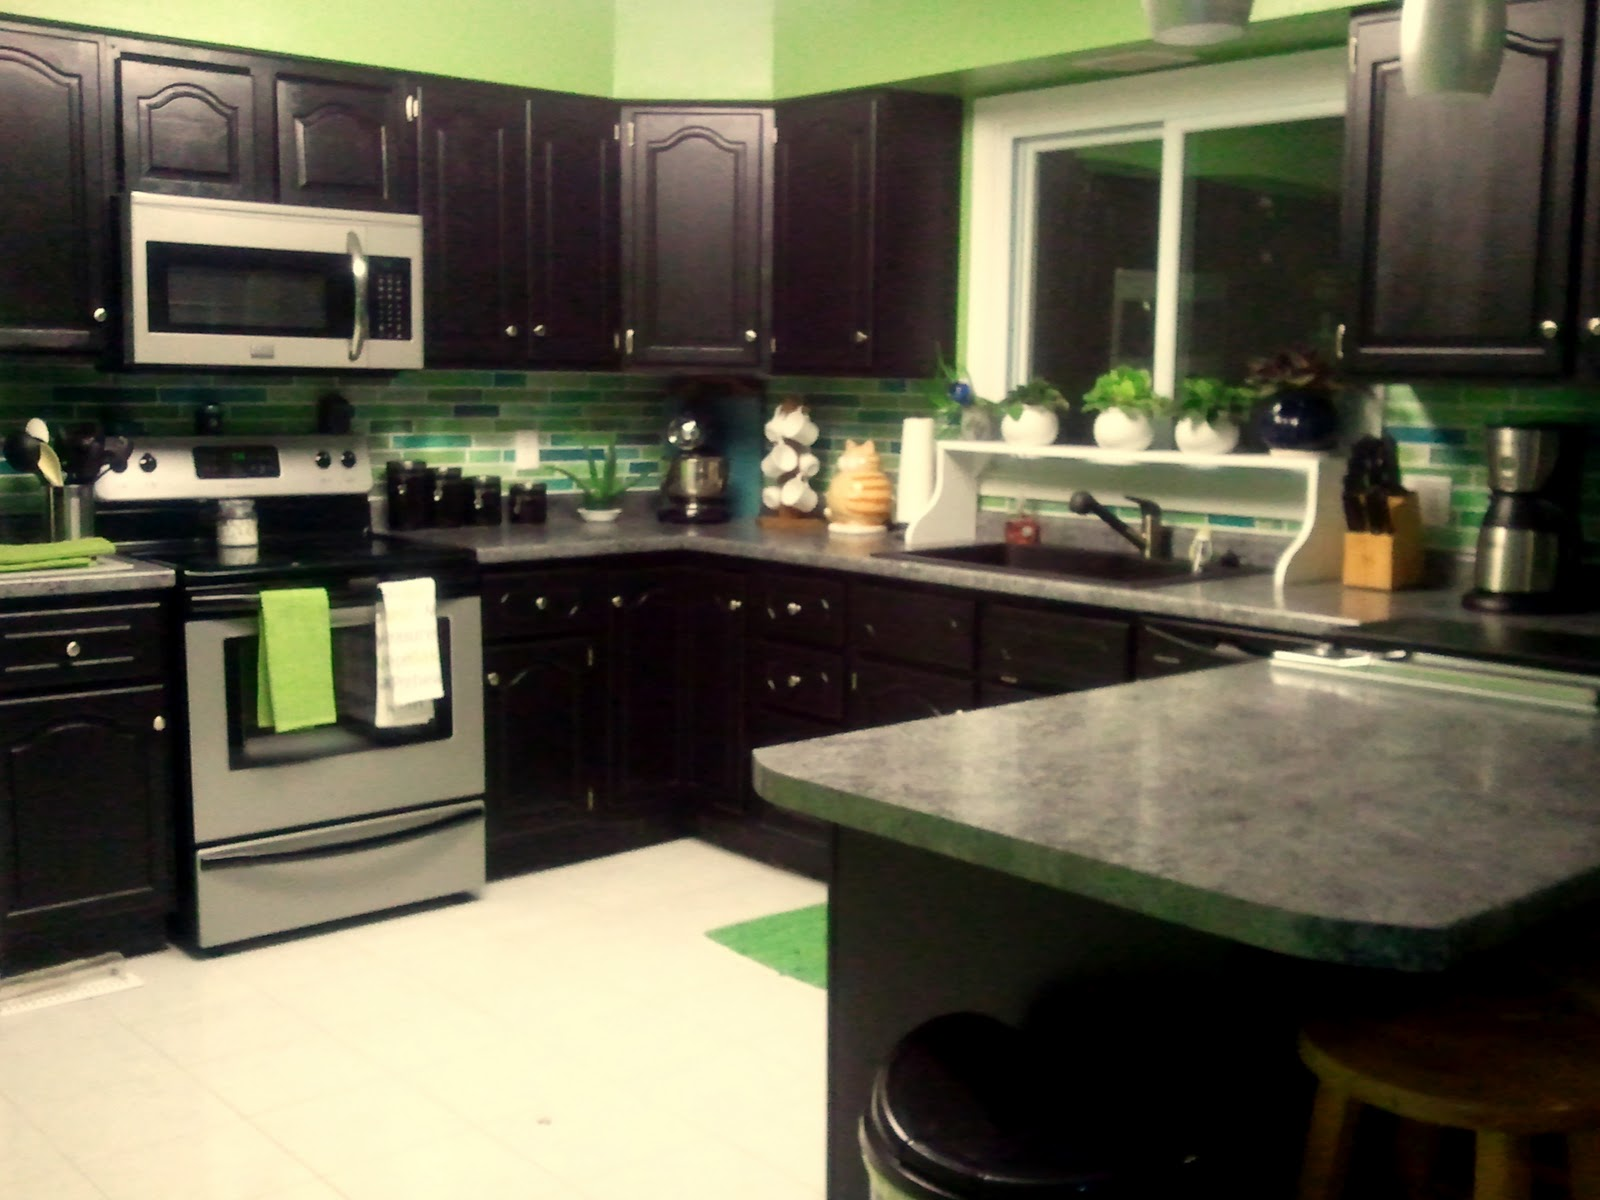 Black kitchen cabinets and green walls